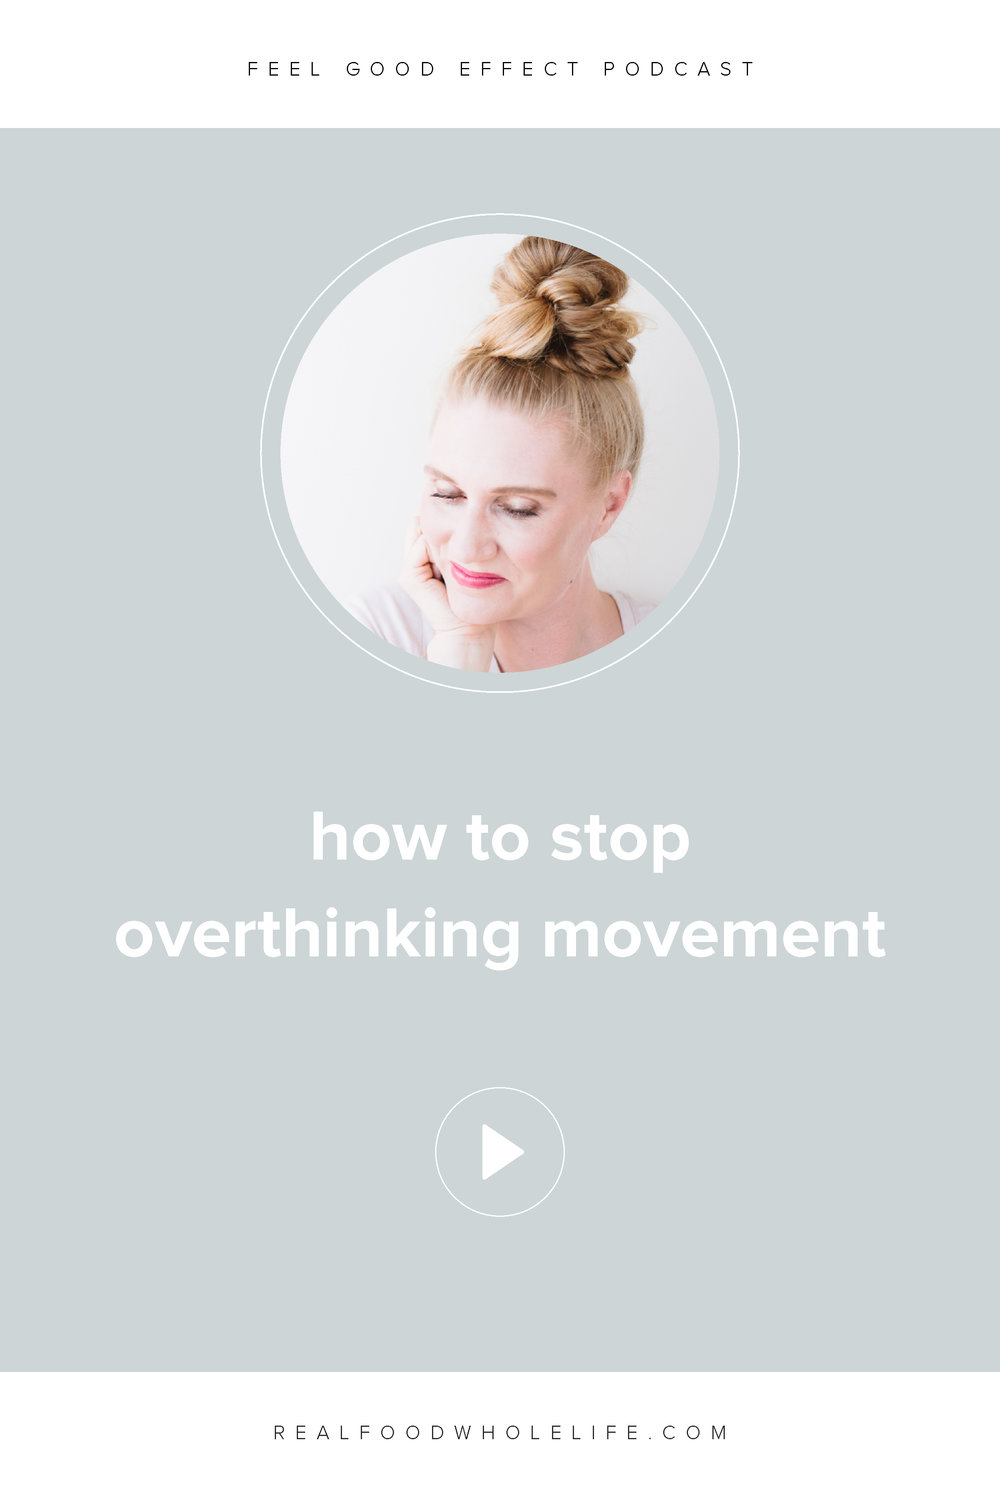 How to stop overthinking movement. In this episode of the Feel Good Effect, we're going to break down consistent movement with some tactical tips, strategies, and habits to get you out of overthinking and into action. #realfoodwholelife #feelgoodeffectpodcast #personaldevelopment #selfcare #selfimprovement #podcast #wellnesspodcast #healthpodcast  #wellness #wellnesspodcast  #healthandwellness #healthandwellnesspodcast #miniseries #overthinking